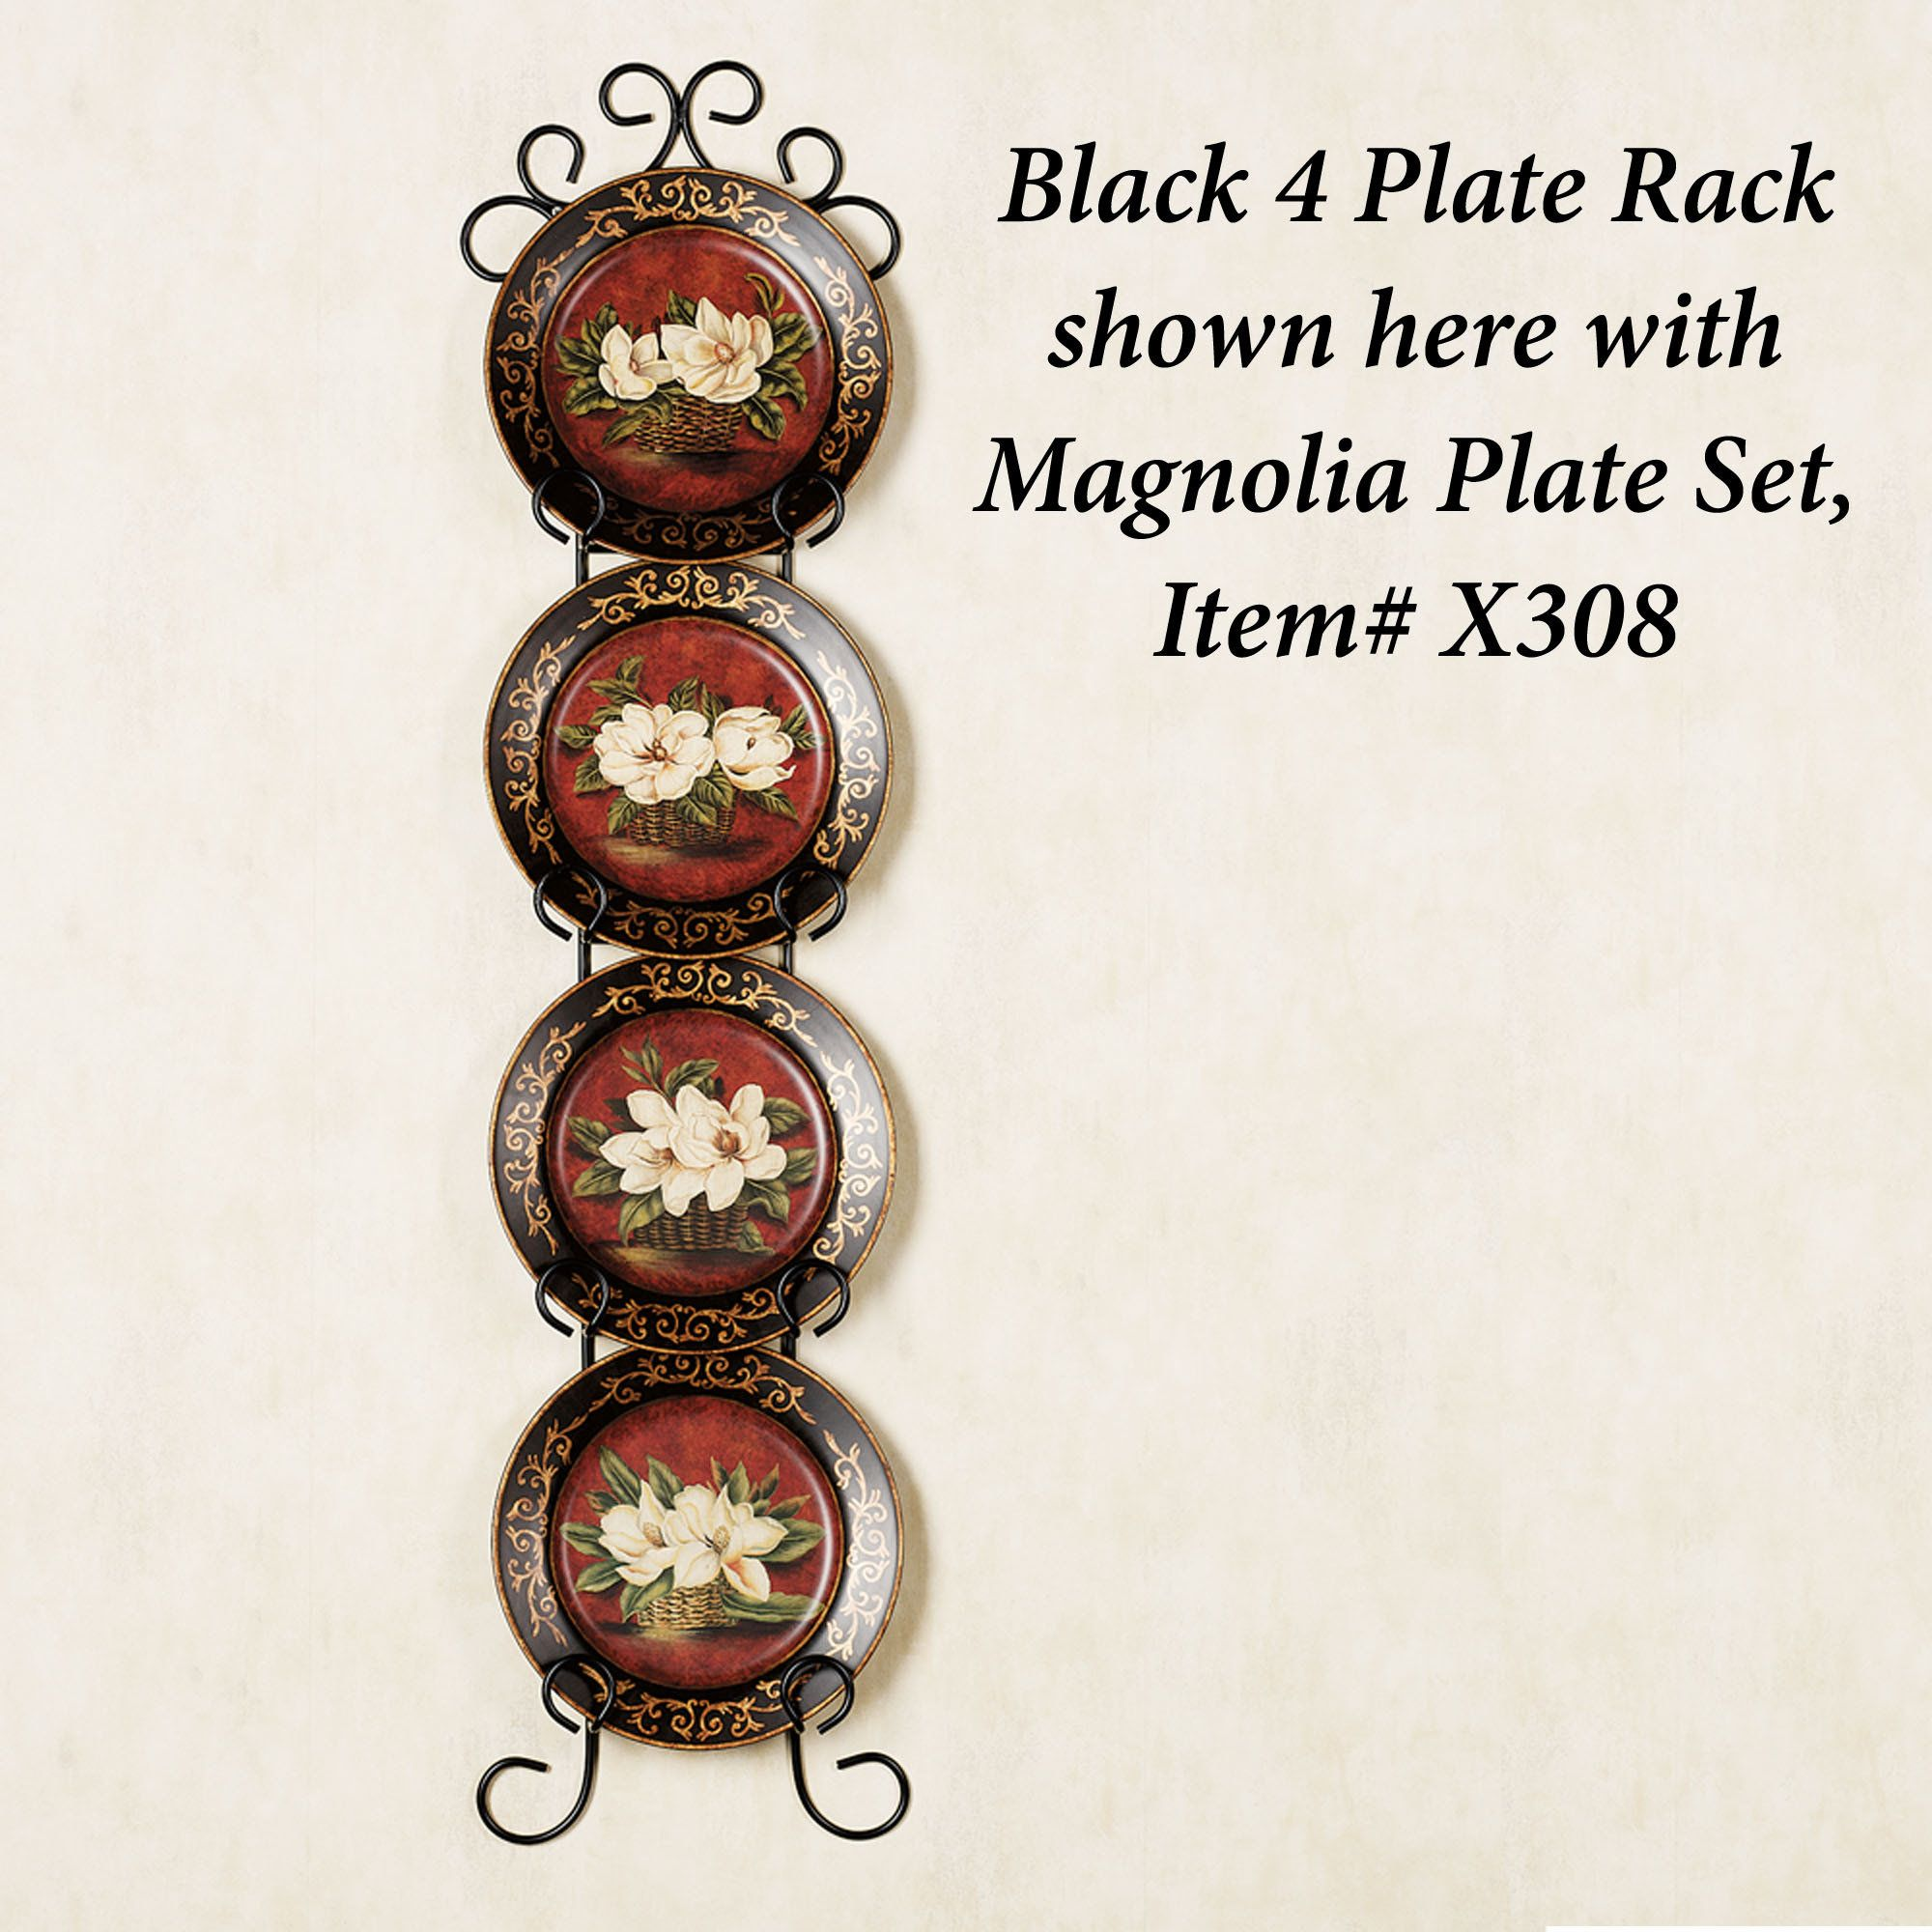 Regal Decorative Plate Display Rack  sc 1 st  Pinterest & Regal Decorative Plate Display Rack | Plate racks Wall decorations ...